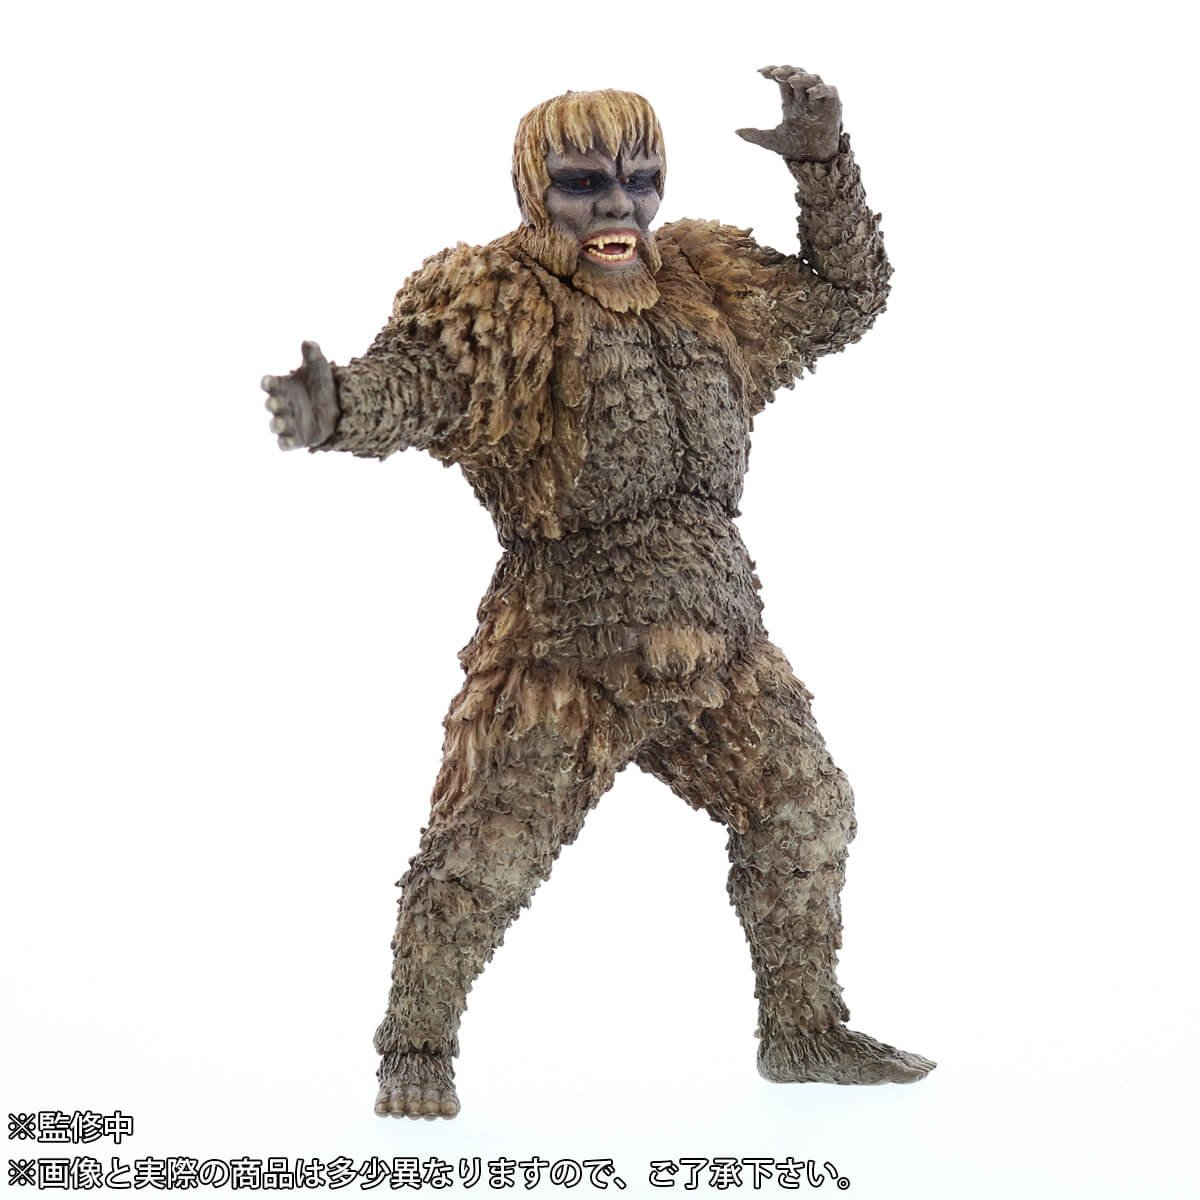 Toho Large Monster Series Sanda vs. Guyra Shonen Rick Limited Edition 8